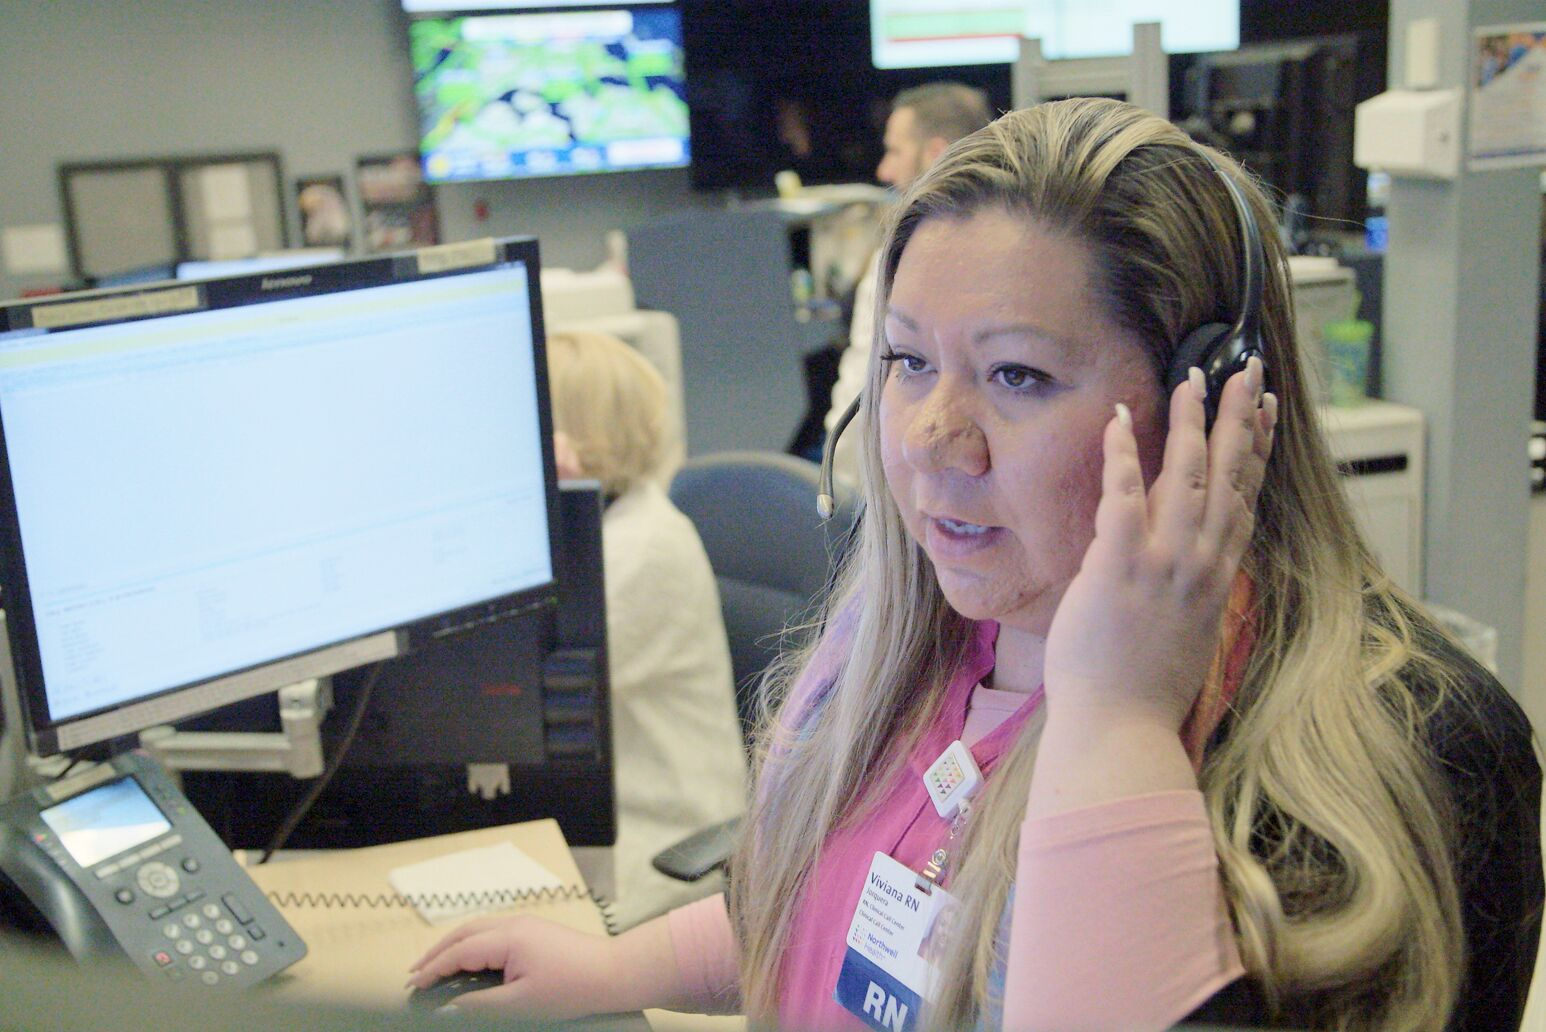 A registered nurse provides advice at Northwell Health's employee Clinical Call Center.